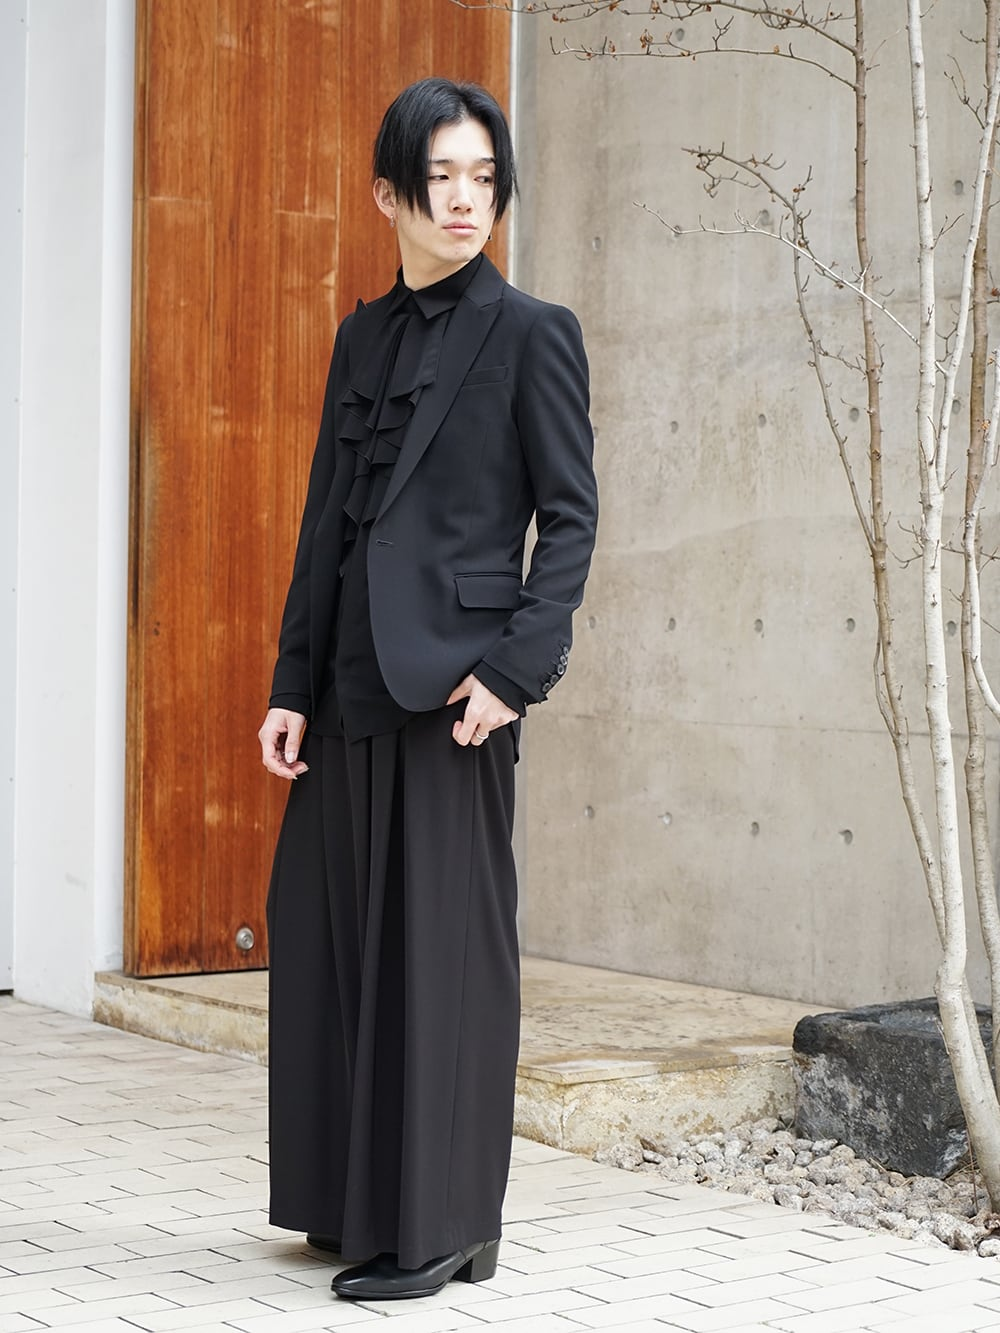 Galaabend 2020SS Black Dress Styling - 1-002